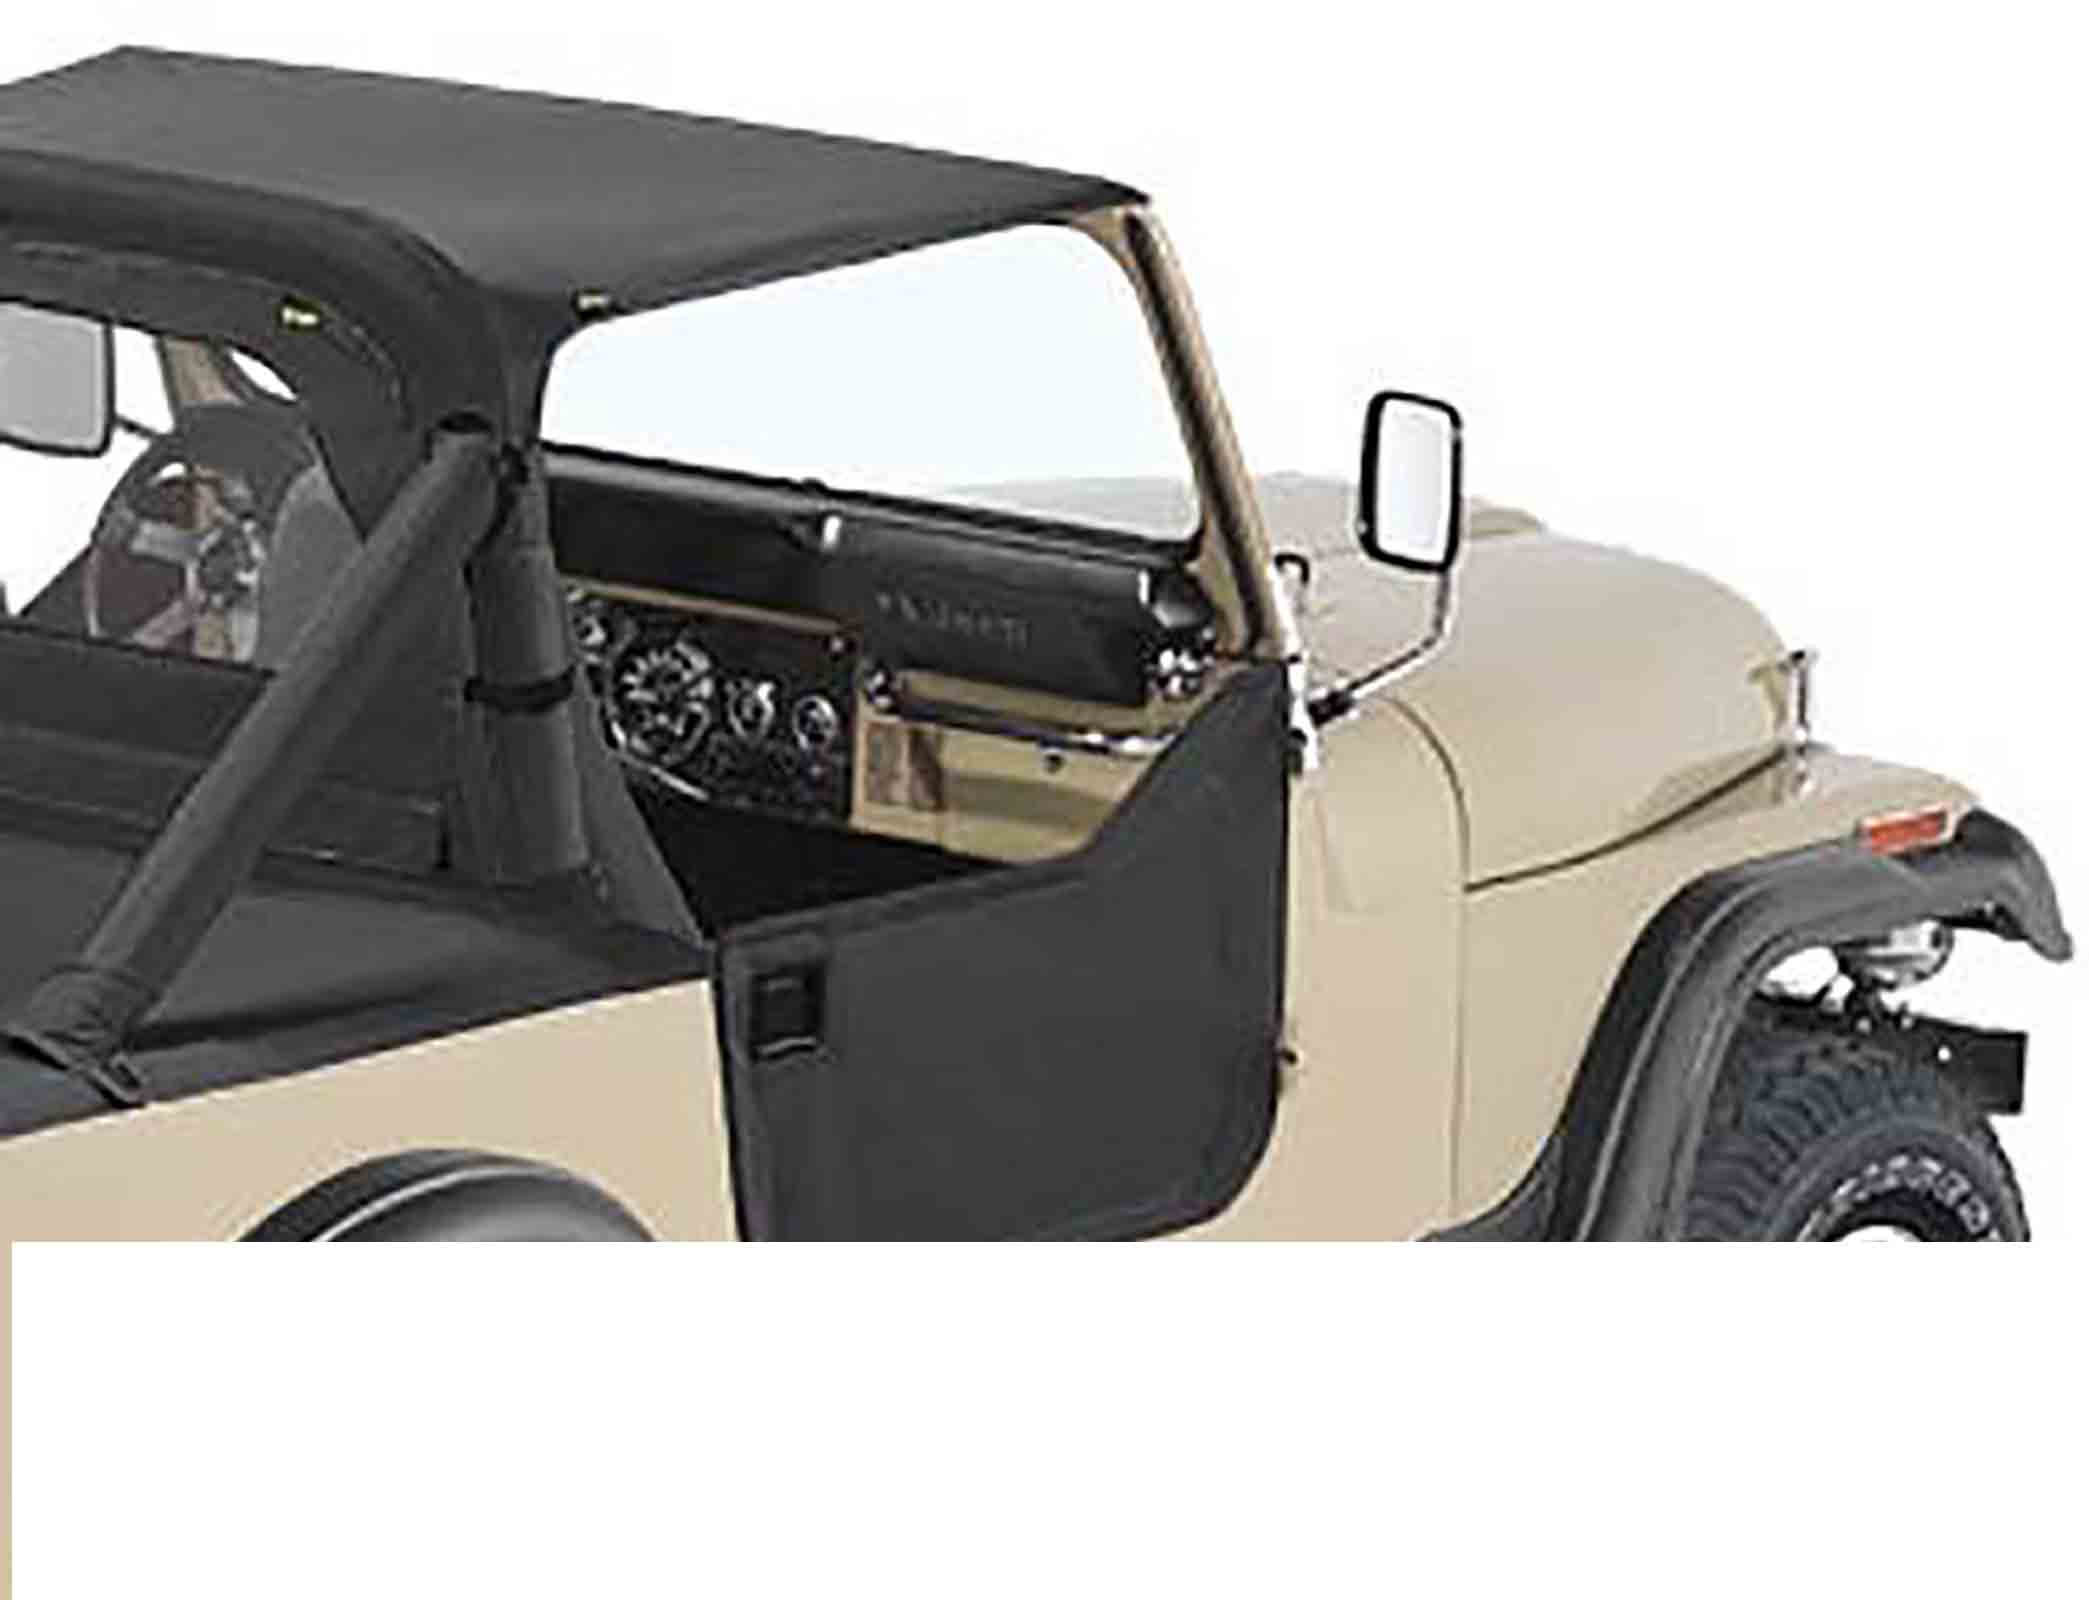 Mezzeporte jeep cj7 81 86 wrangler yj 87 95 colori: black crush ricambi jeep